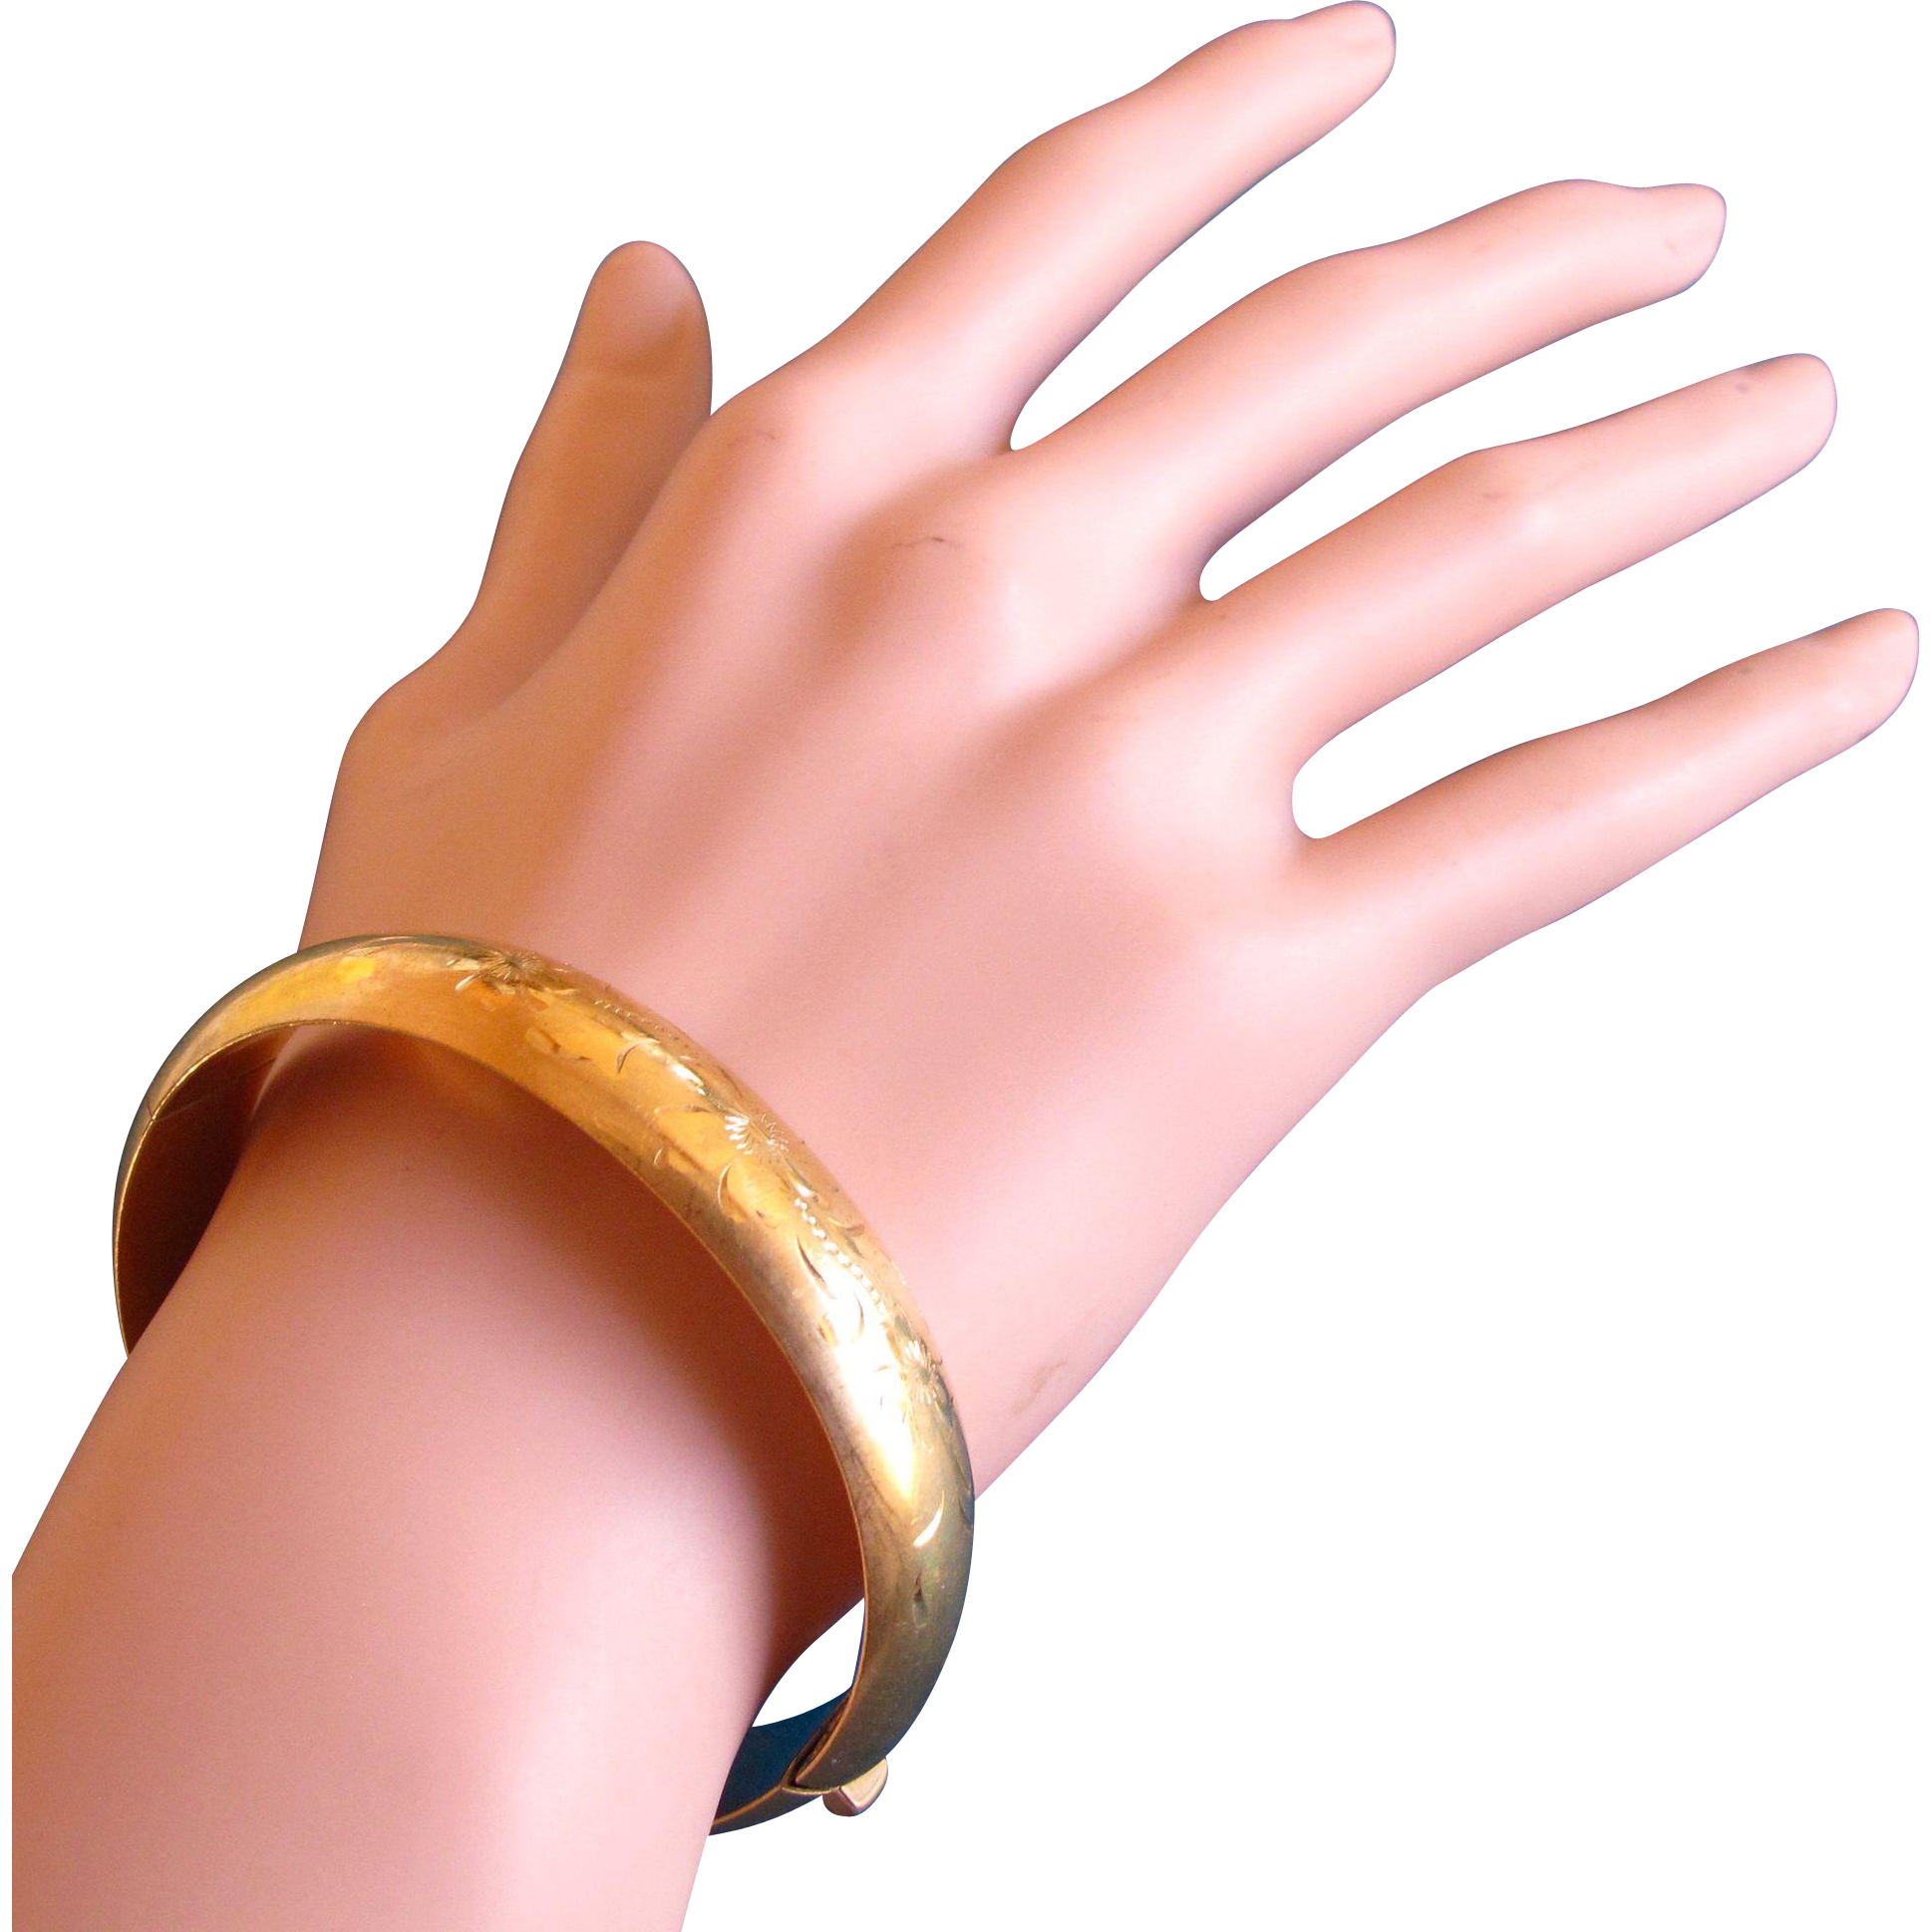 yellow hinged hinge gold wide bracelet new heavy bangle shop italy bead bangles arrivals hard